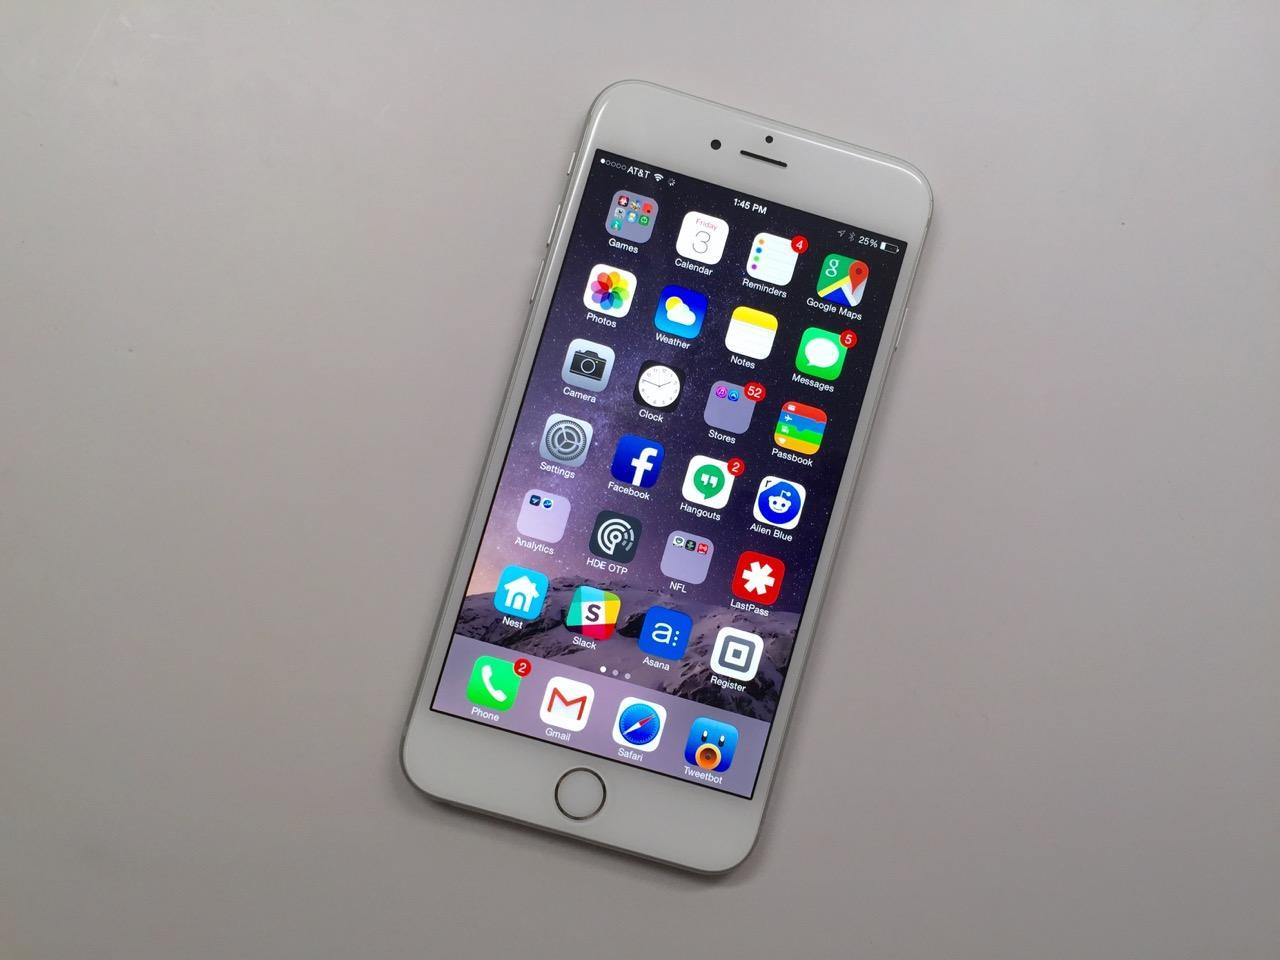 release date for iphone 6s u s iphone 6s release date 10 things to expect 2550